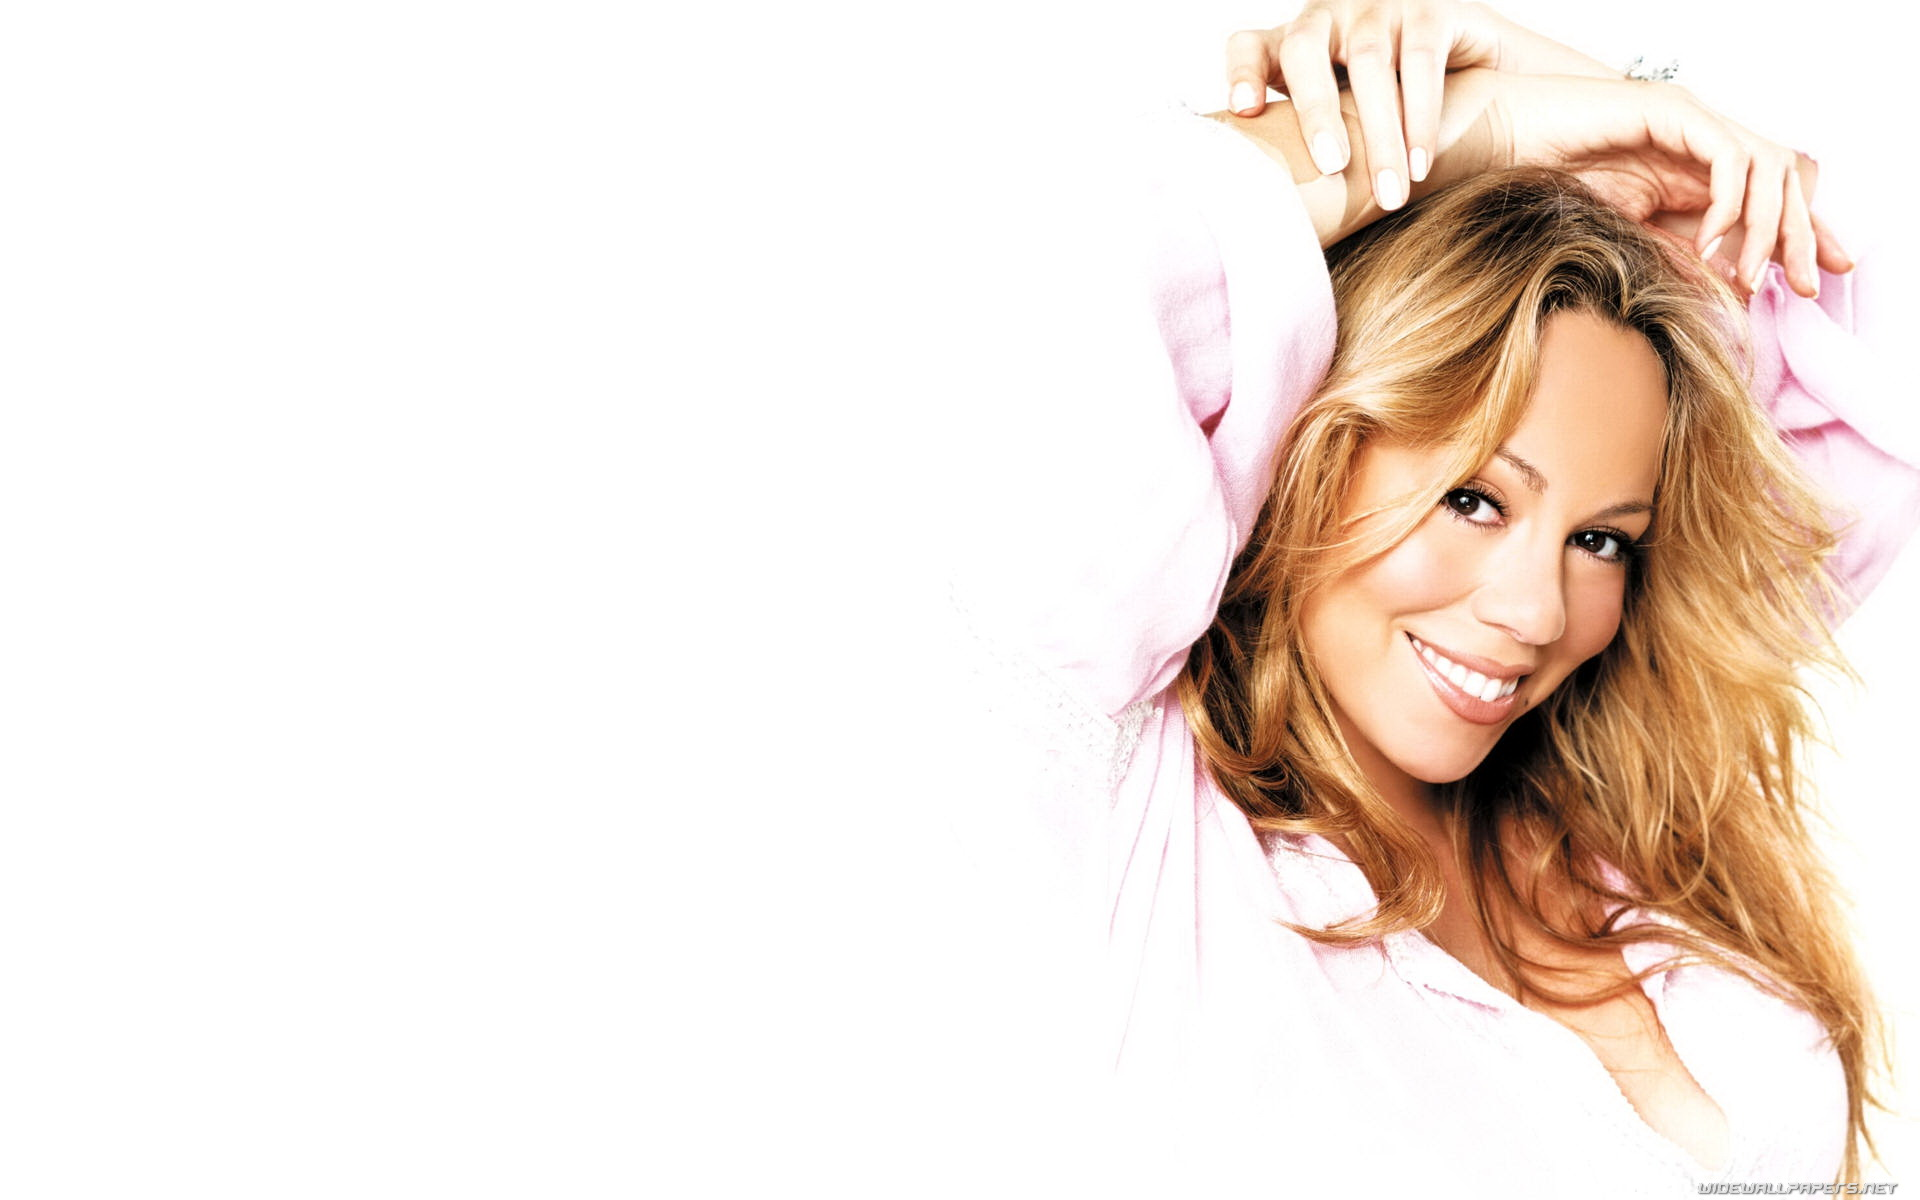 Please check our latest hd widescreen wallpaper below and bring beauty to your desktop. Mariah Carey Wallpaper